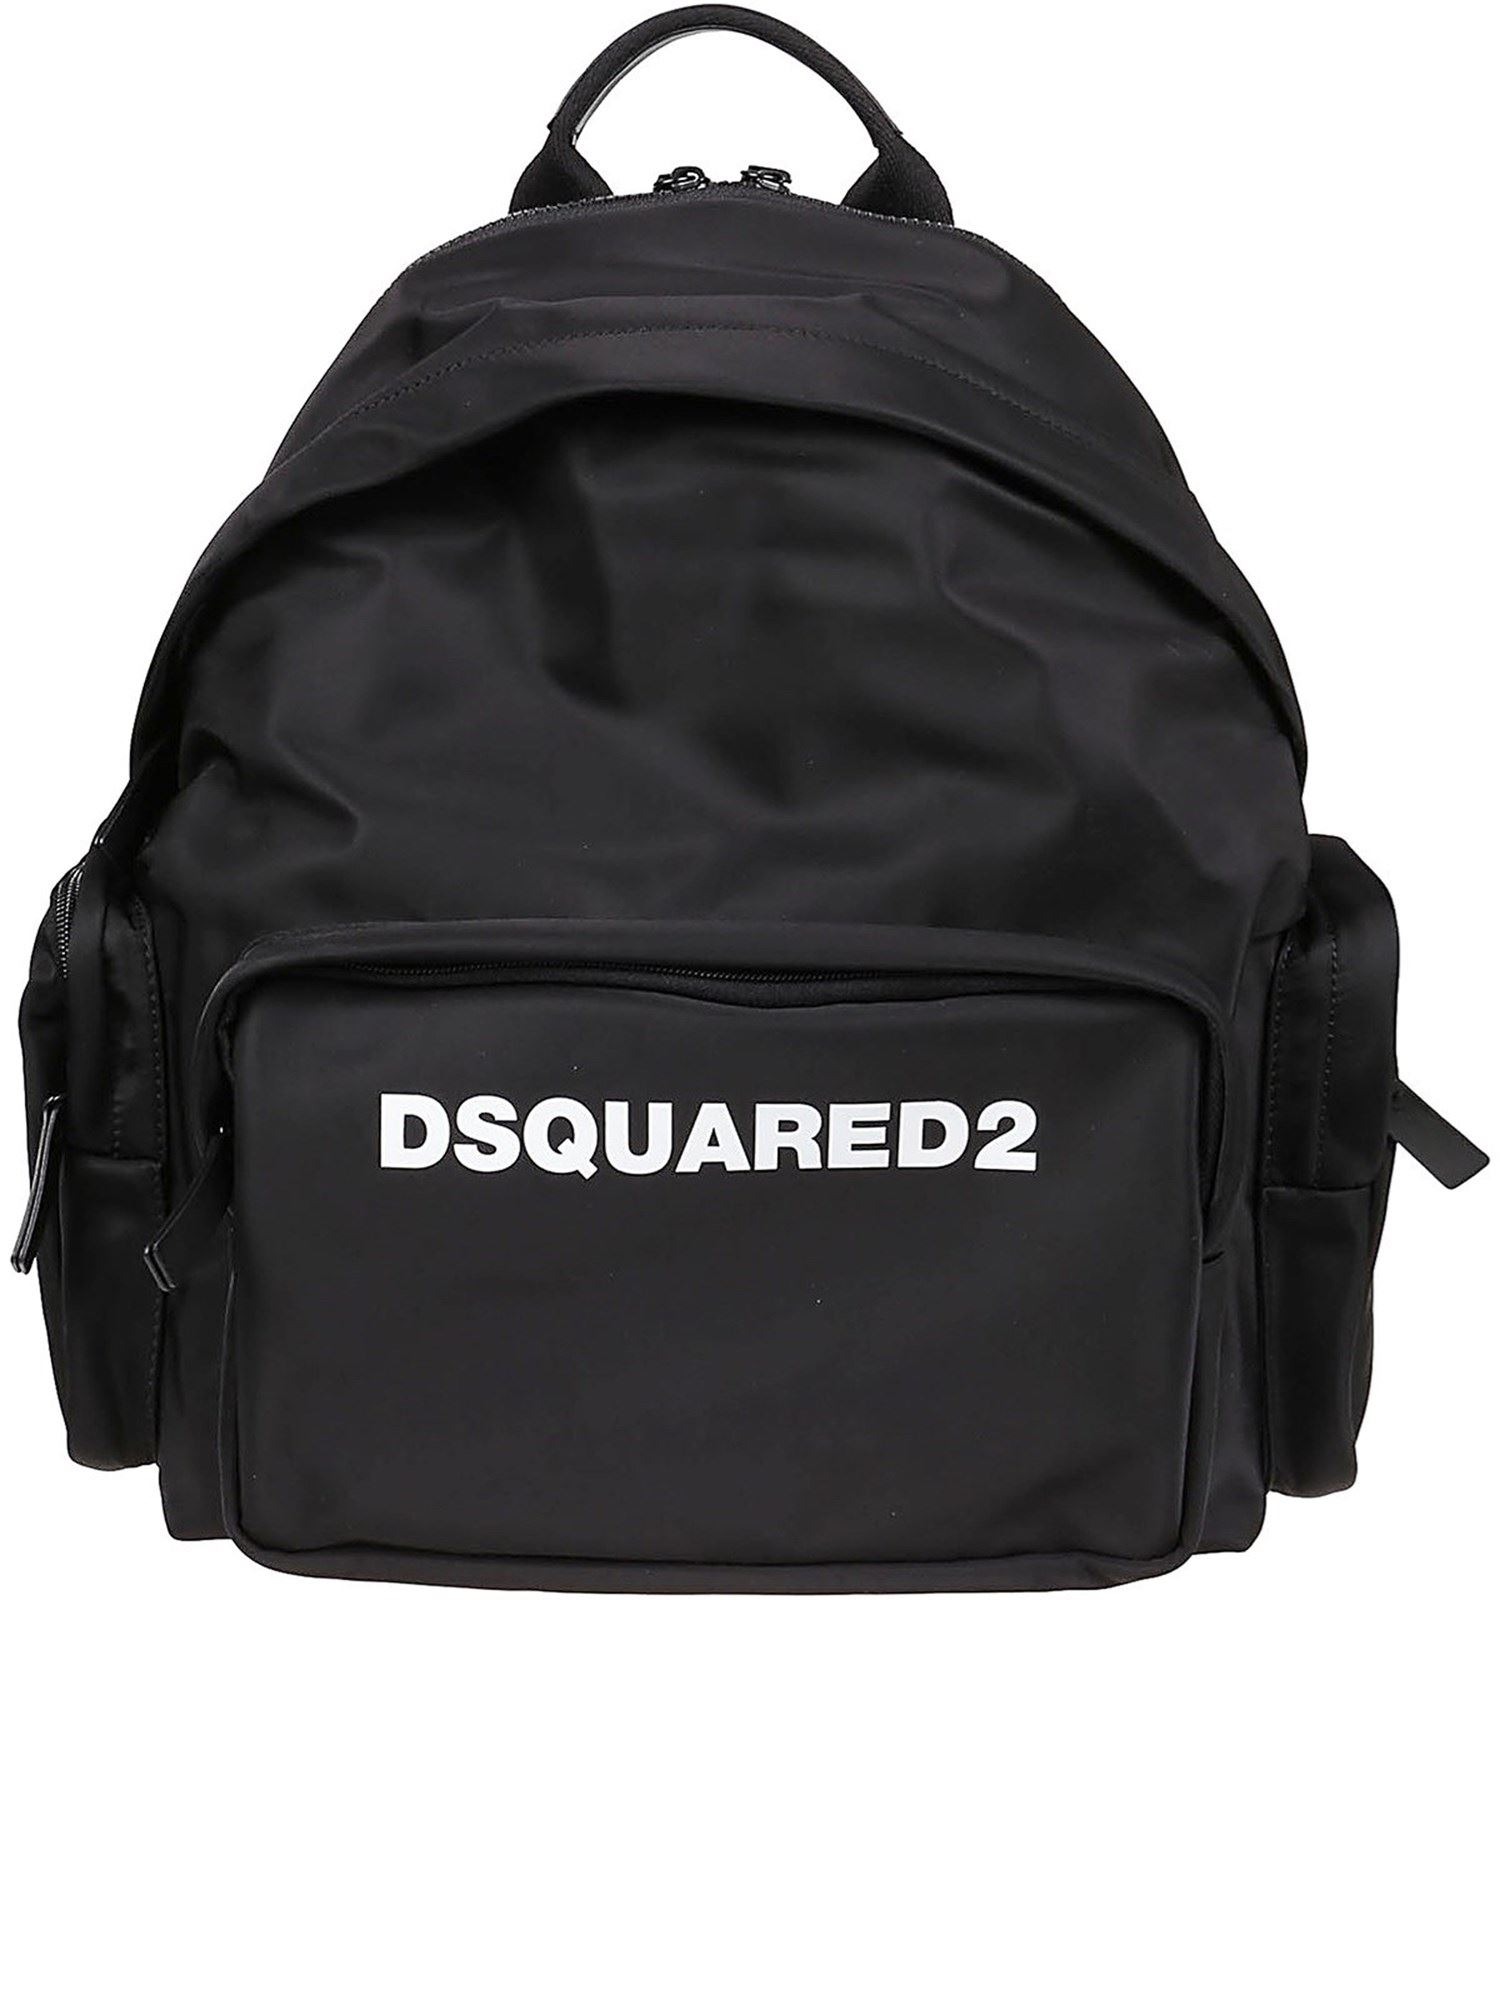 Dsquared2 Leathers LOGO PRINT BACKPACK IN BLACK